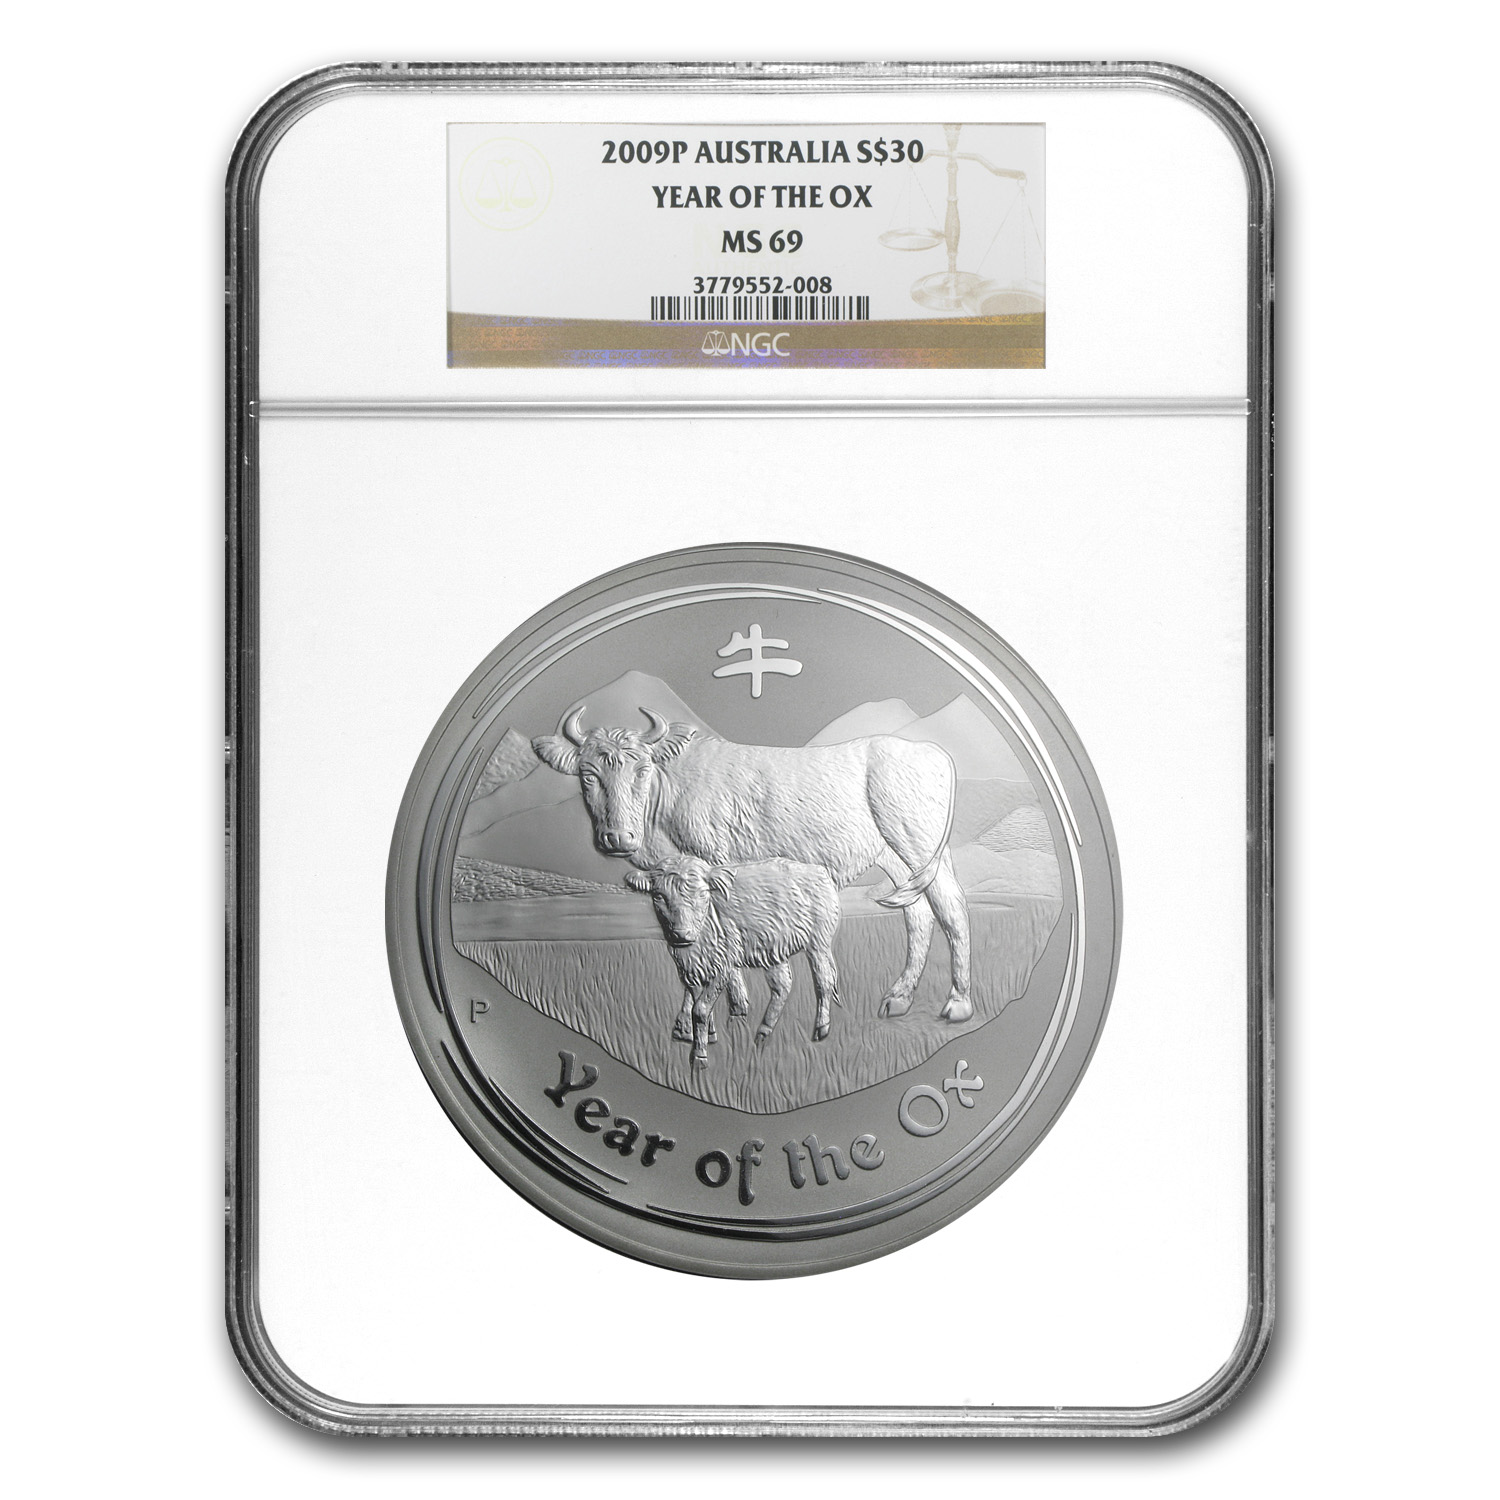 2009 1 kilo (32.15 oz) Silver Year of the Ox Coin (SII) MS-69 NGC